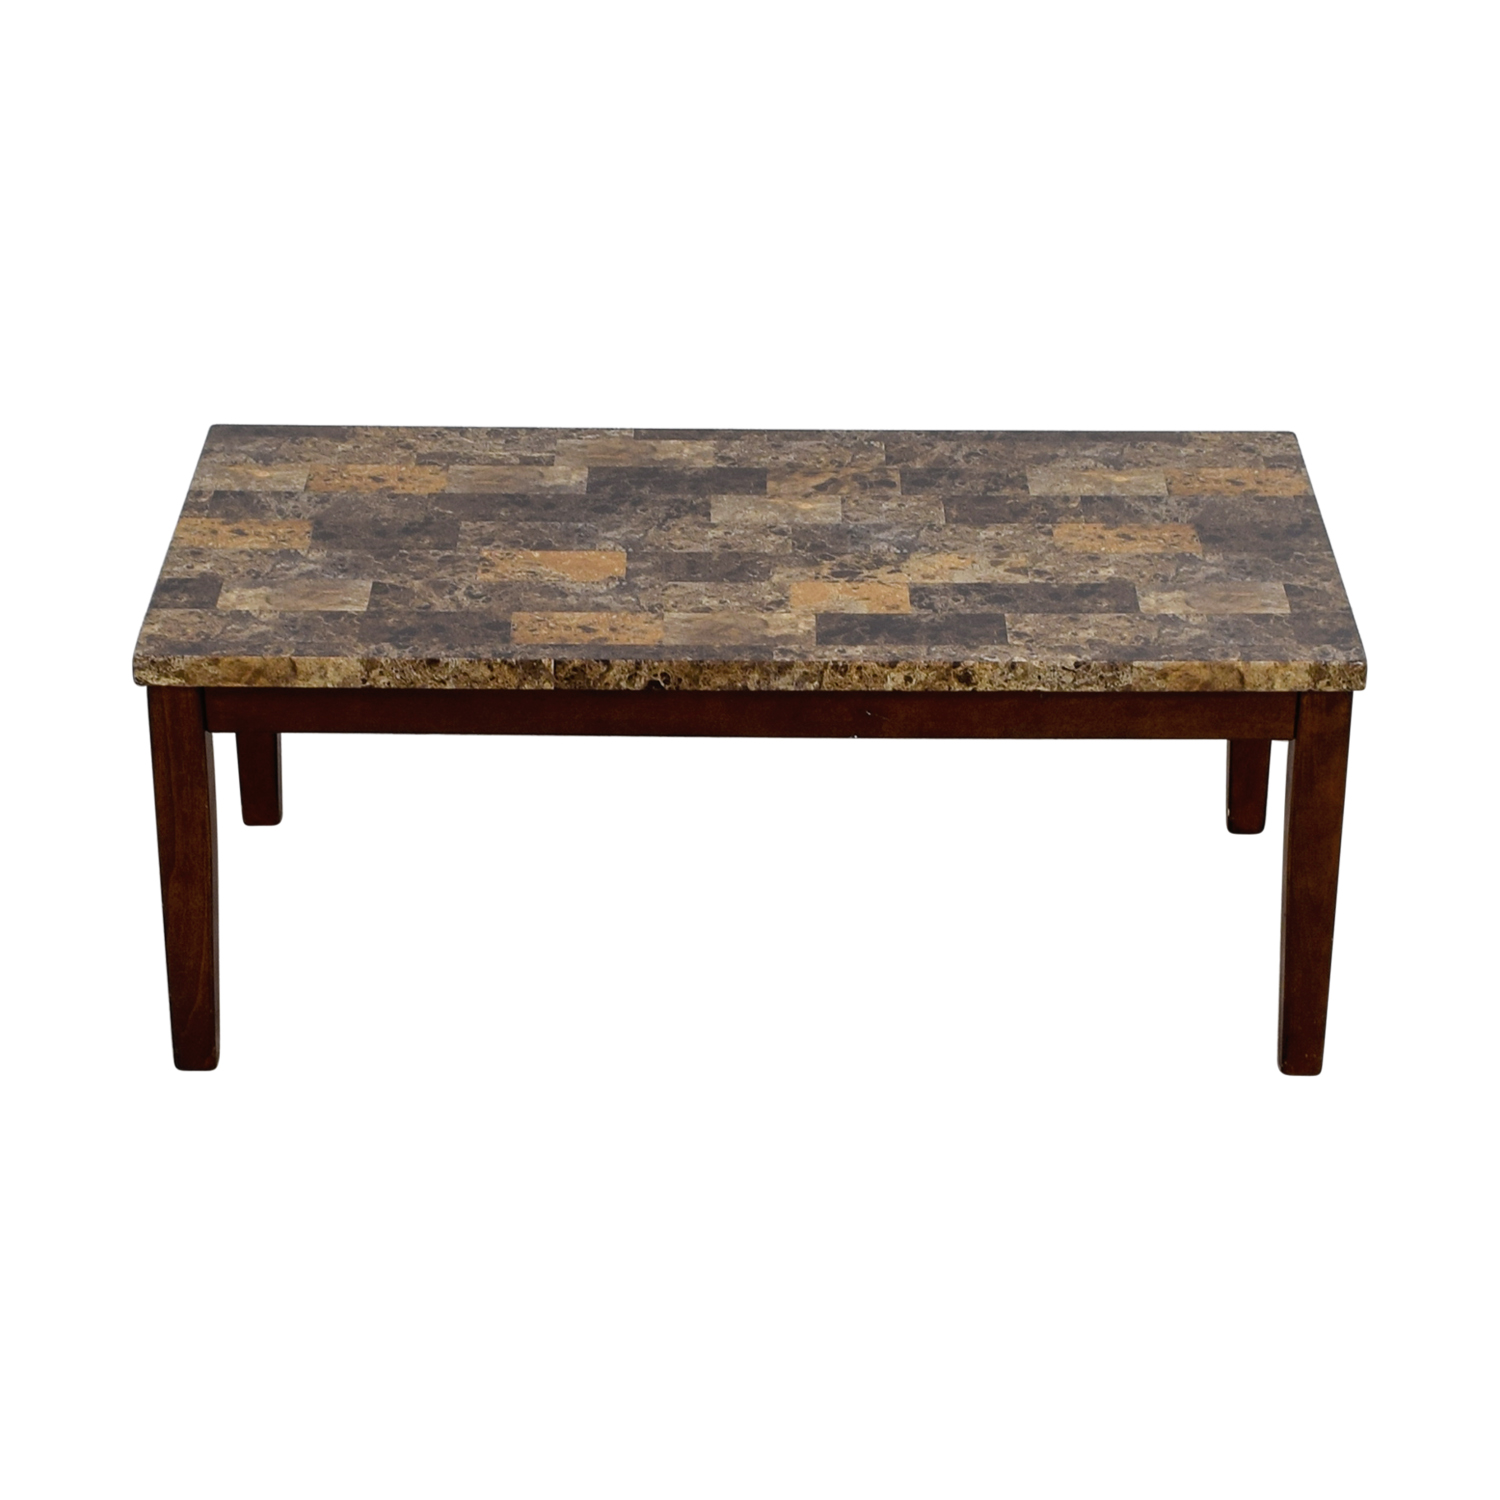 56 Off Ashley Furniture Ashley Furniture Faux Marble Coffee Table